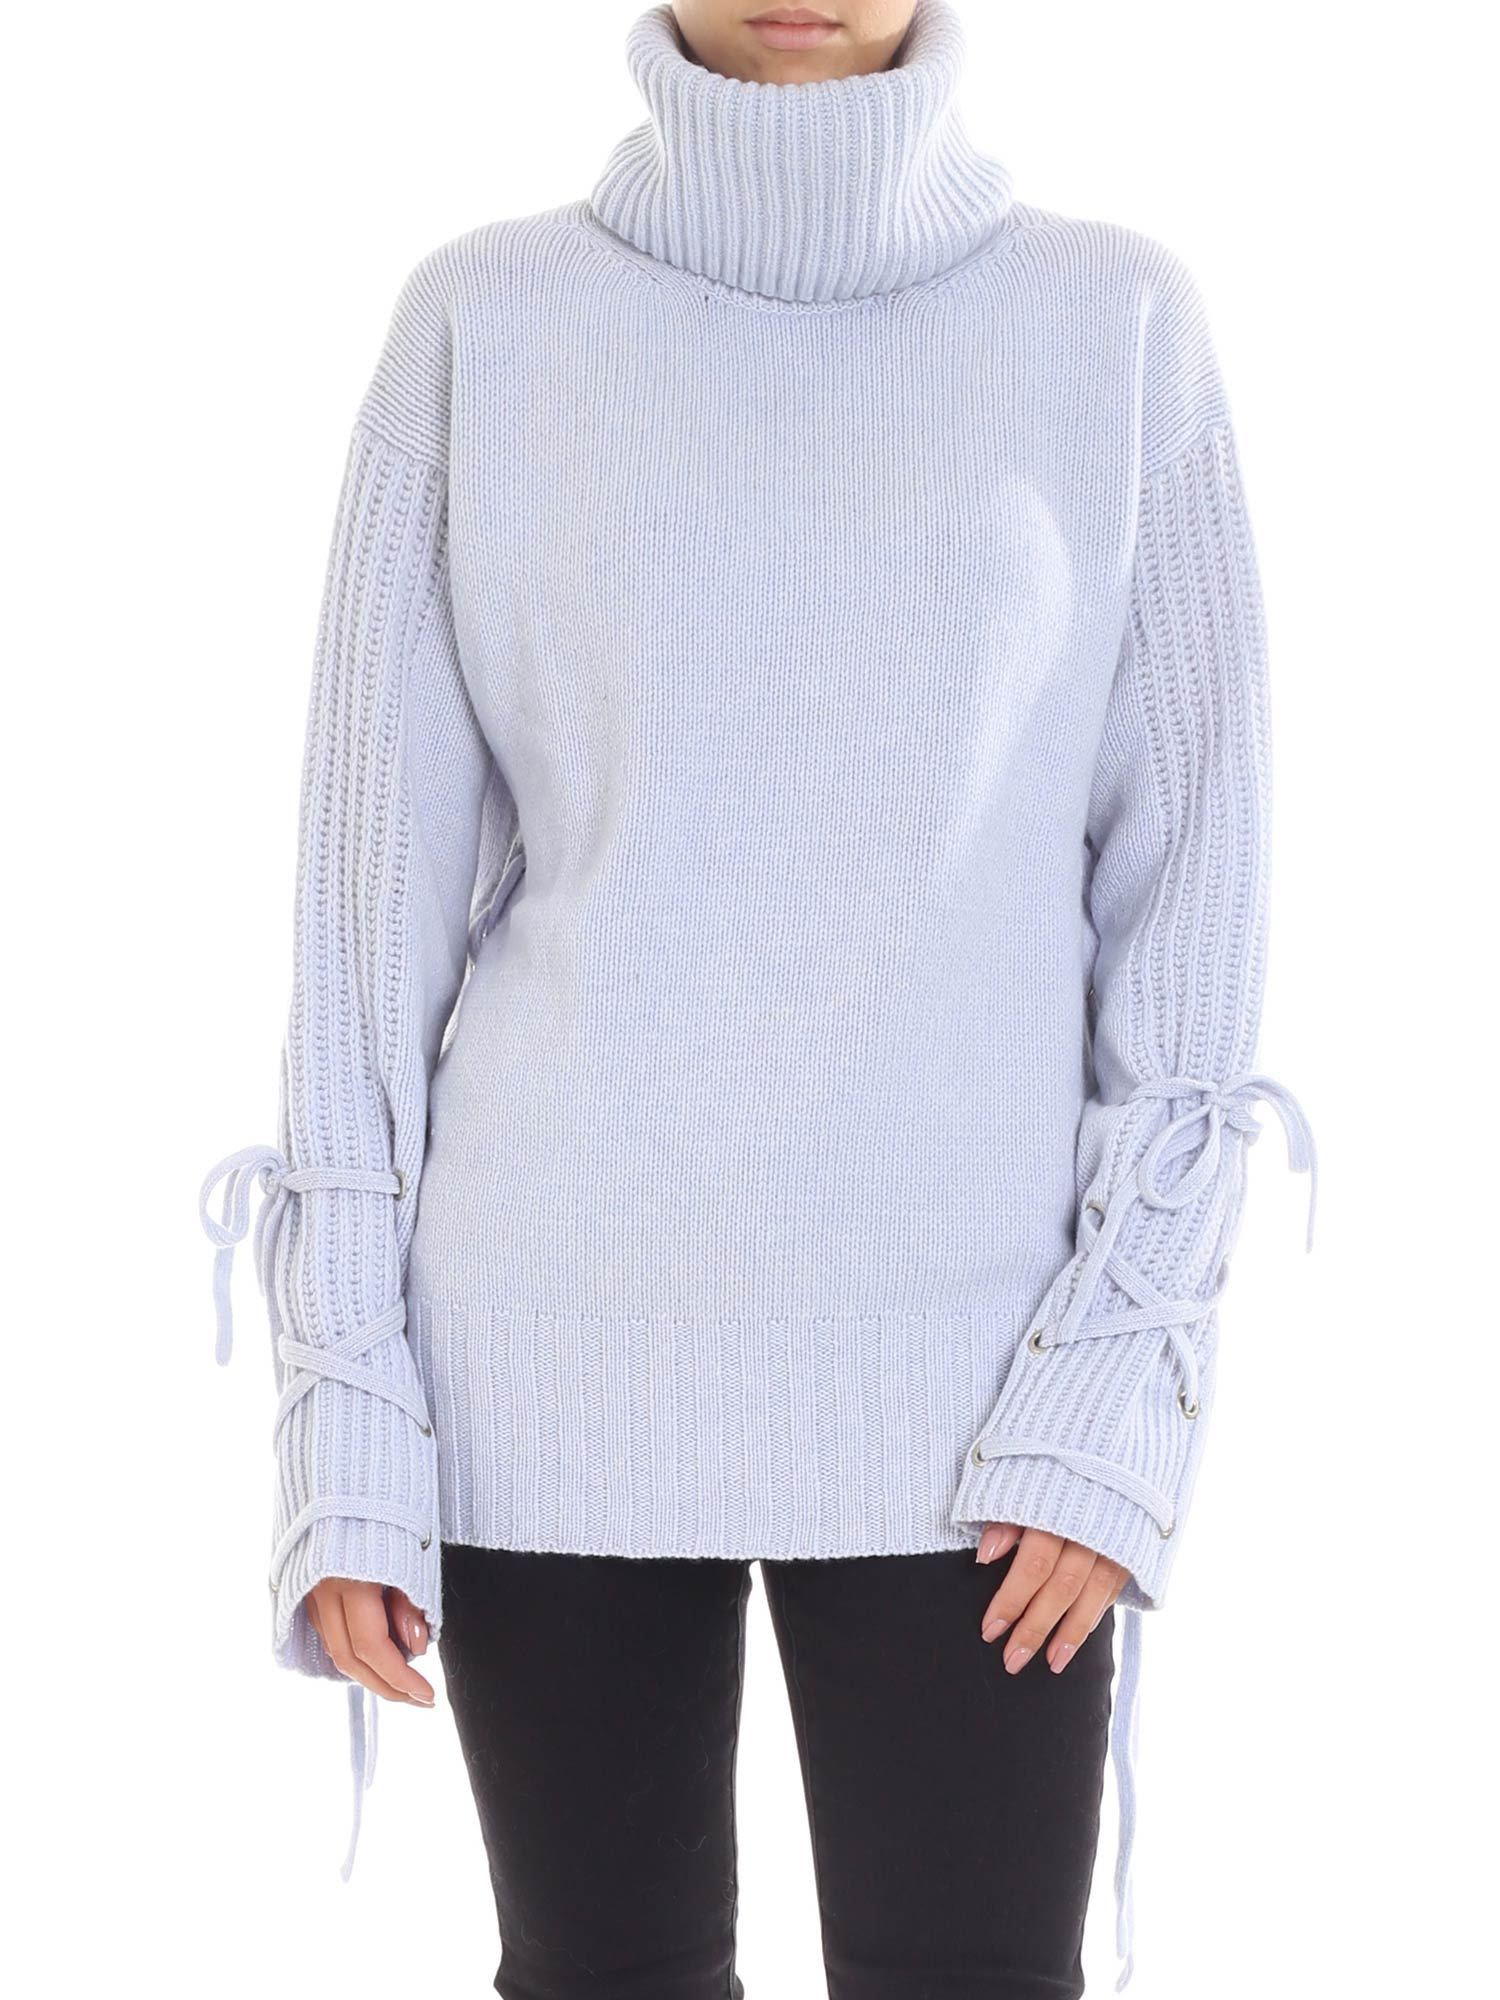 mcq alexander mcqueen -  Lace Up Sweater